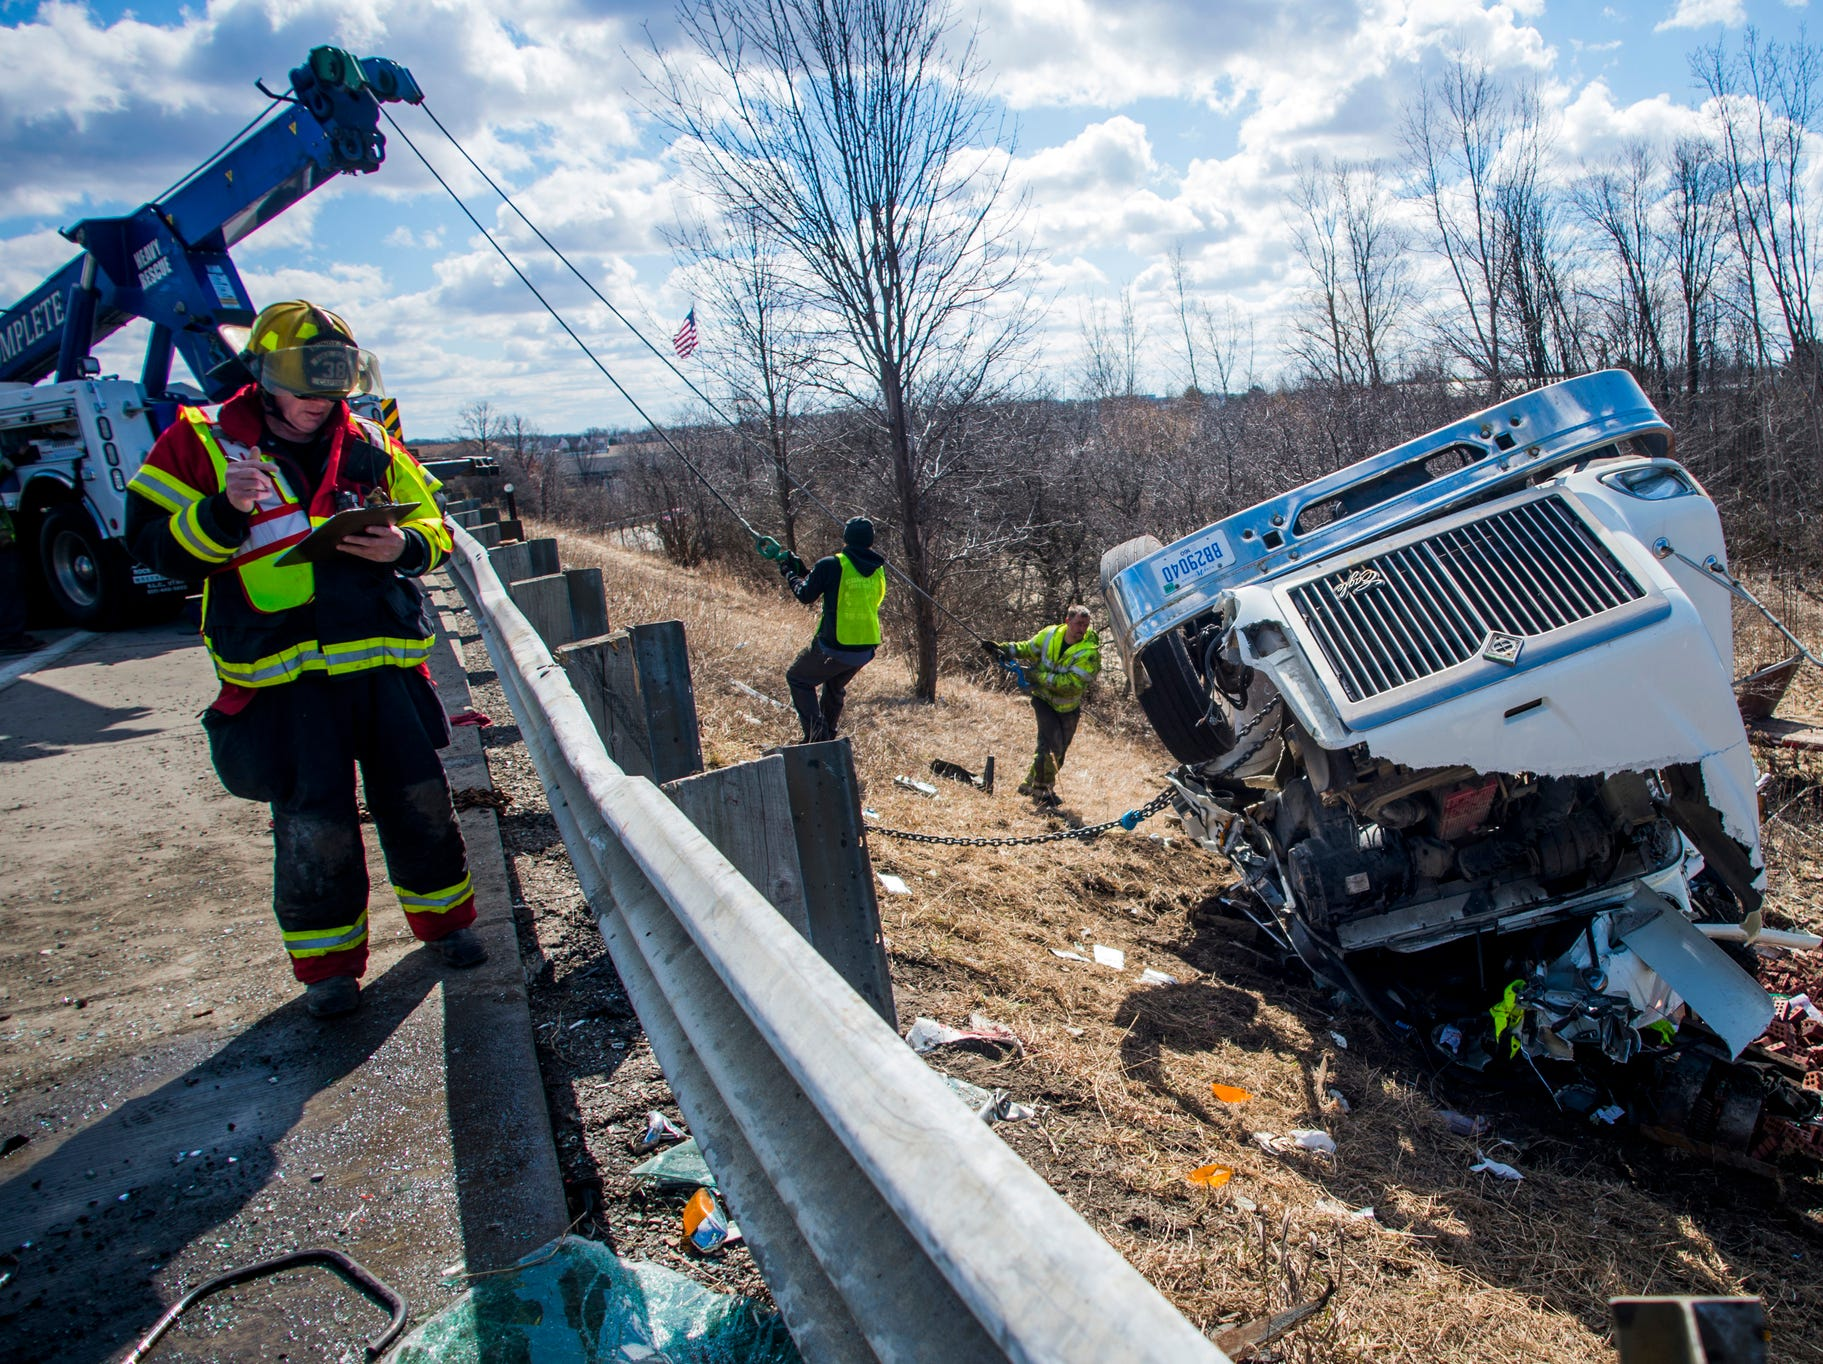 Mundy Township Fire Captain John Sheridan takes notes as workers hook the cab of an overturned semitrailer to a tow truck on southbound Interstate 75 after the U.S. 23 split on Monday, March 18, 2019. The driver was transported to a local hospital.